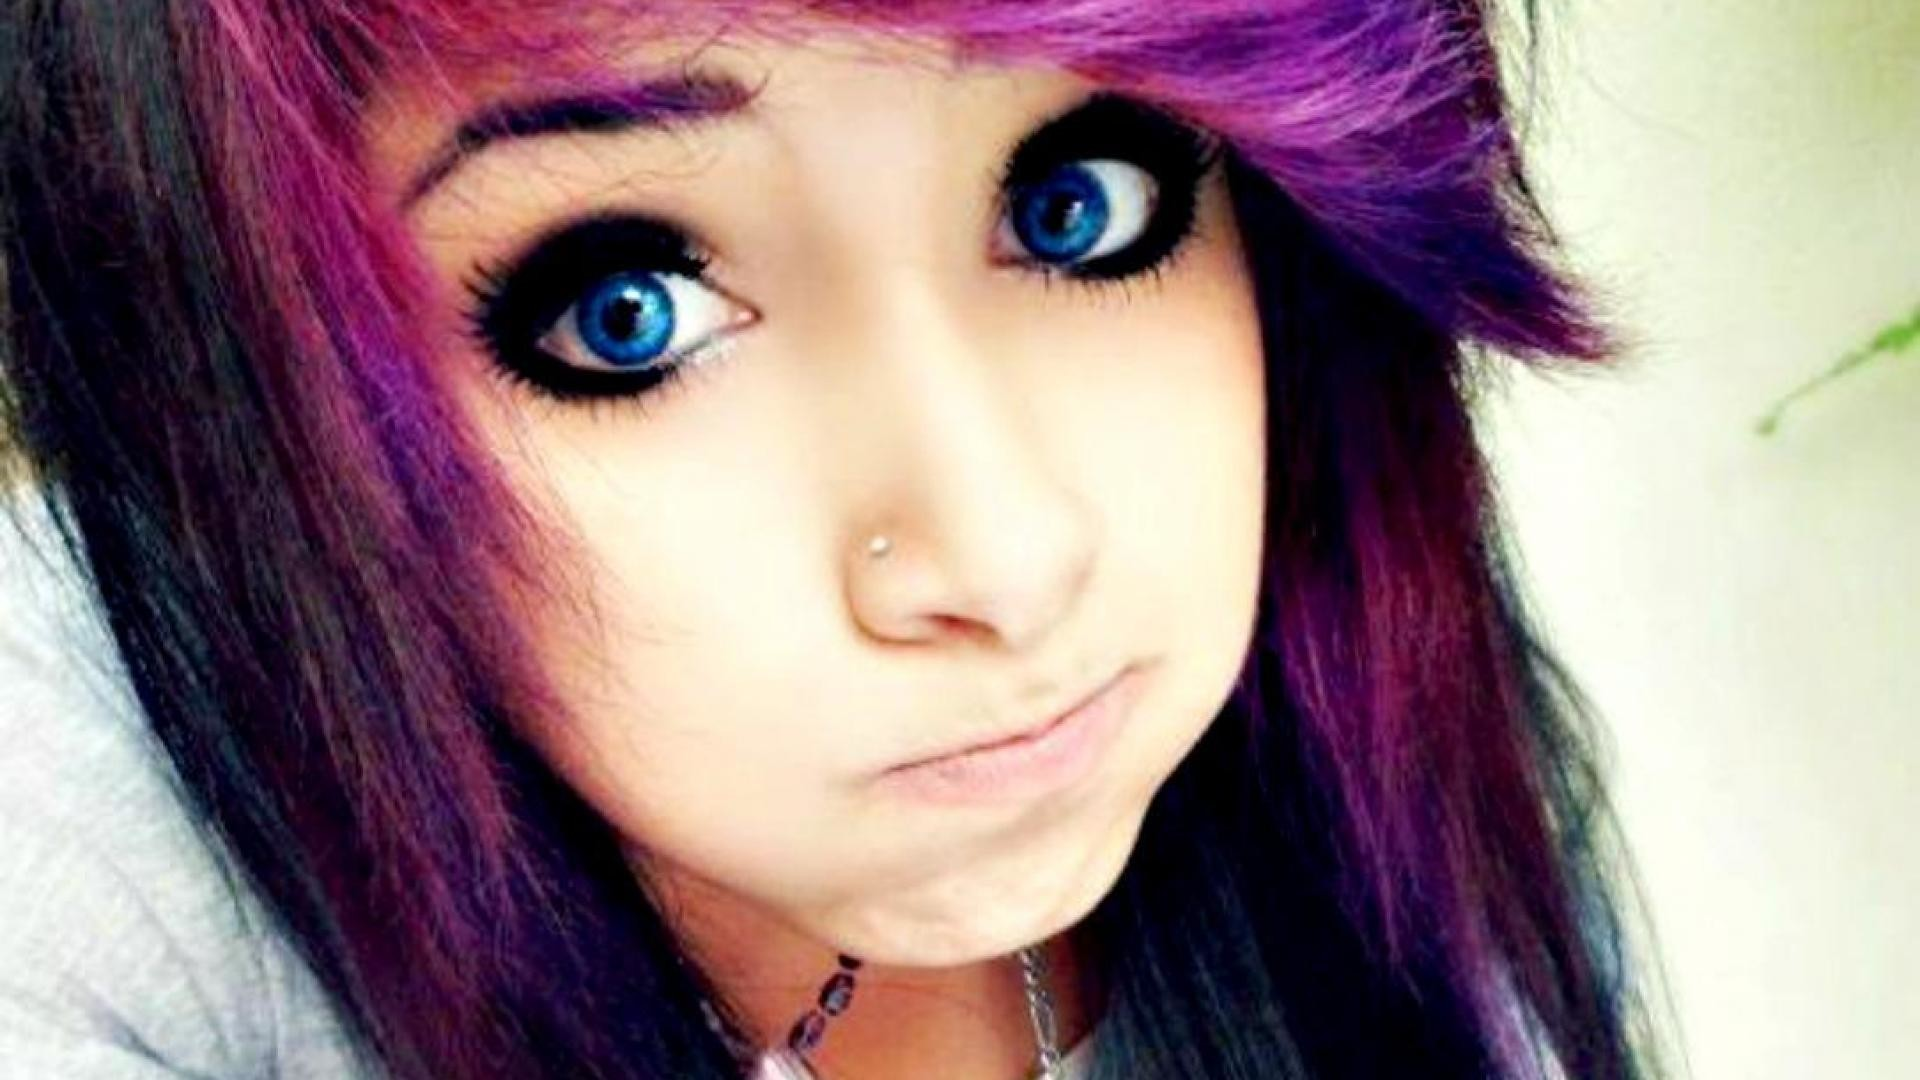 Emo scene cute girl – (#157757) – High Quality and Resolution .